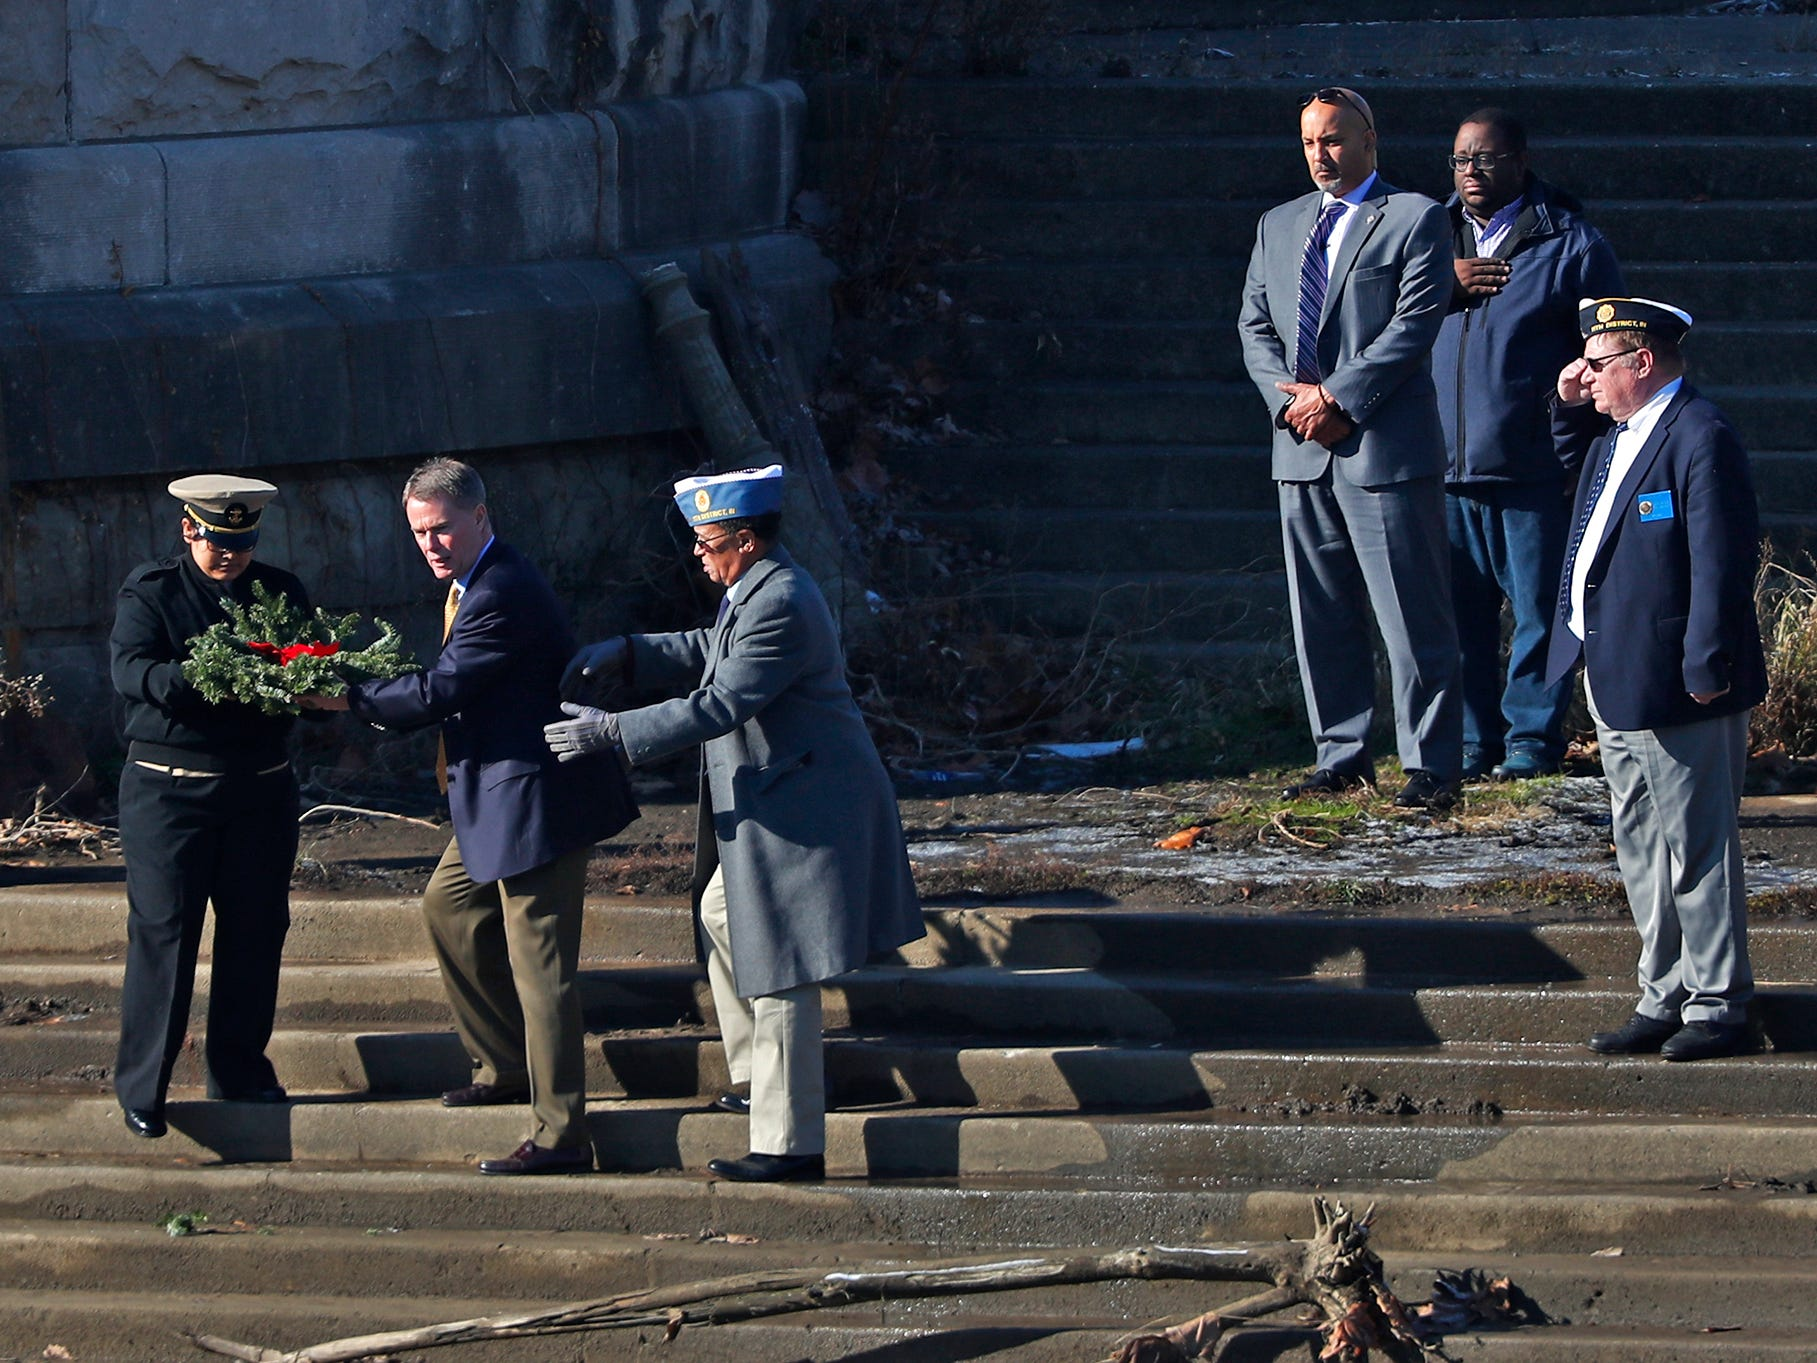 Valeria Hernandez, left, with Pike High School's JROTC, helps Mayor Joe Hogsett to the White River banks for a wreath tossing ceremony, as part of the Pearl Harbor Day Remembrance at Riverside High School, Friday, Dec. 7, 2018.  The former Heslar Naval Armory used to host the event to remember those who died and to honor those who survived in the Dec. 7, 1941 Japanese attack on Pearl Harbor which plunged the United States into World War II.